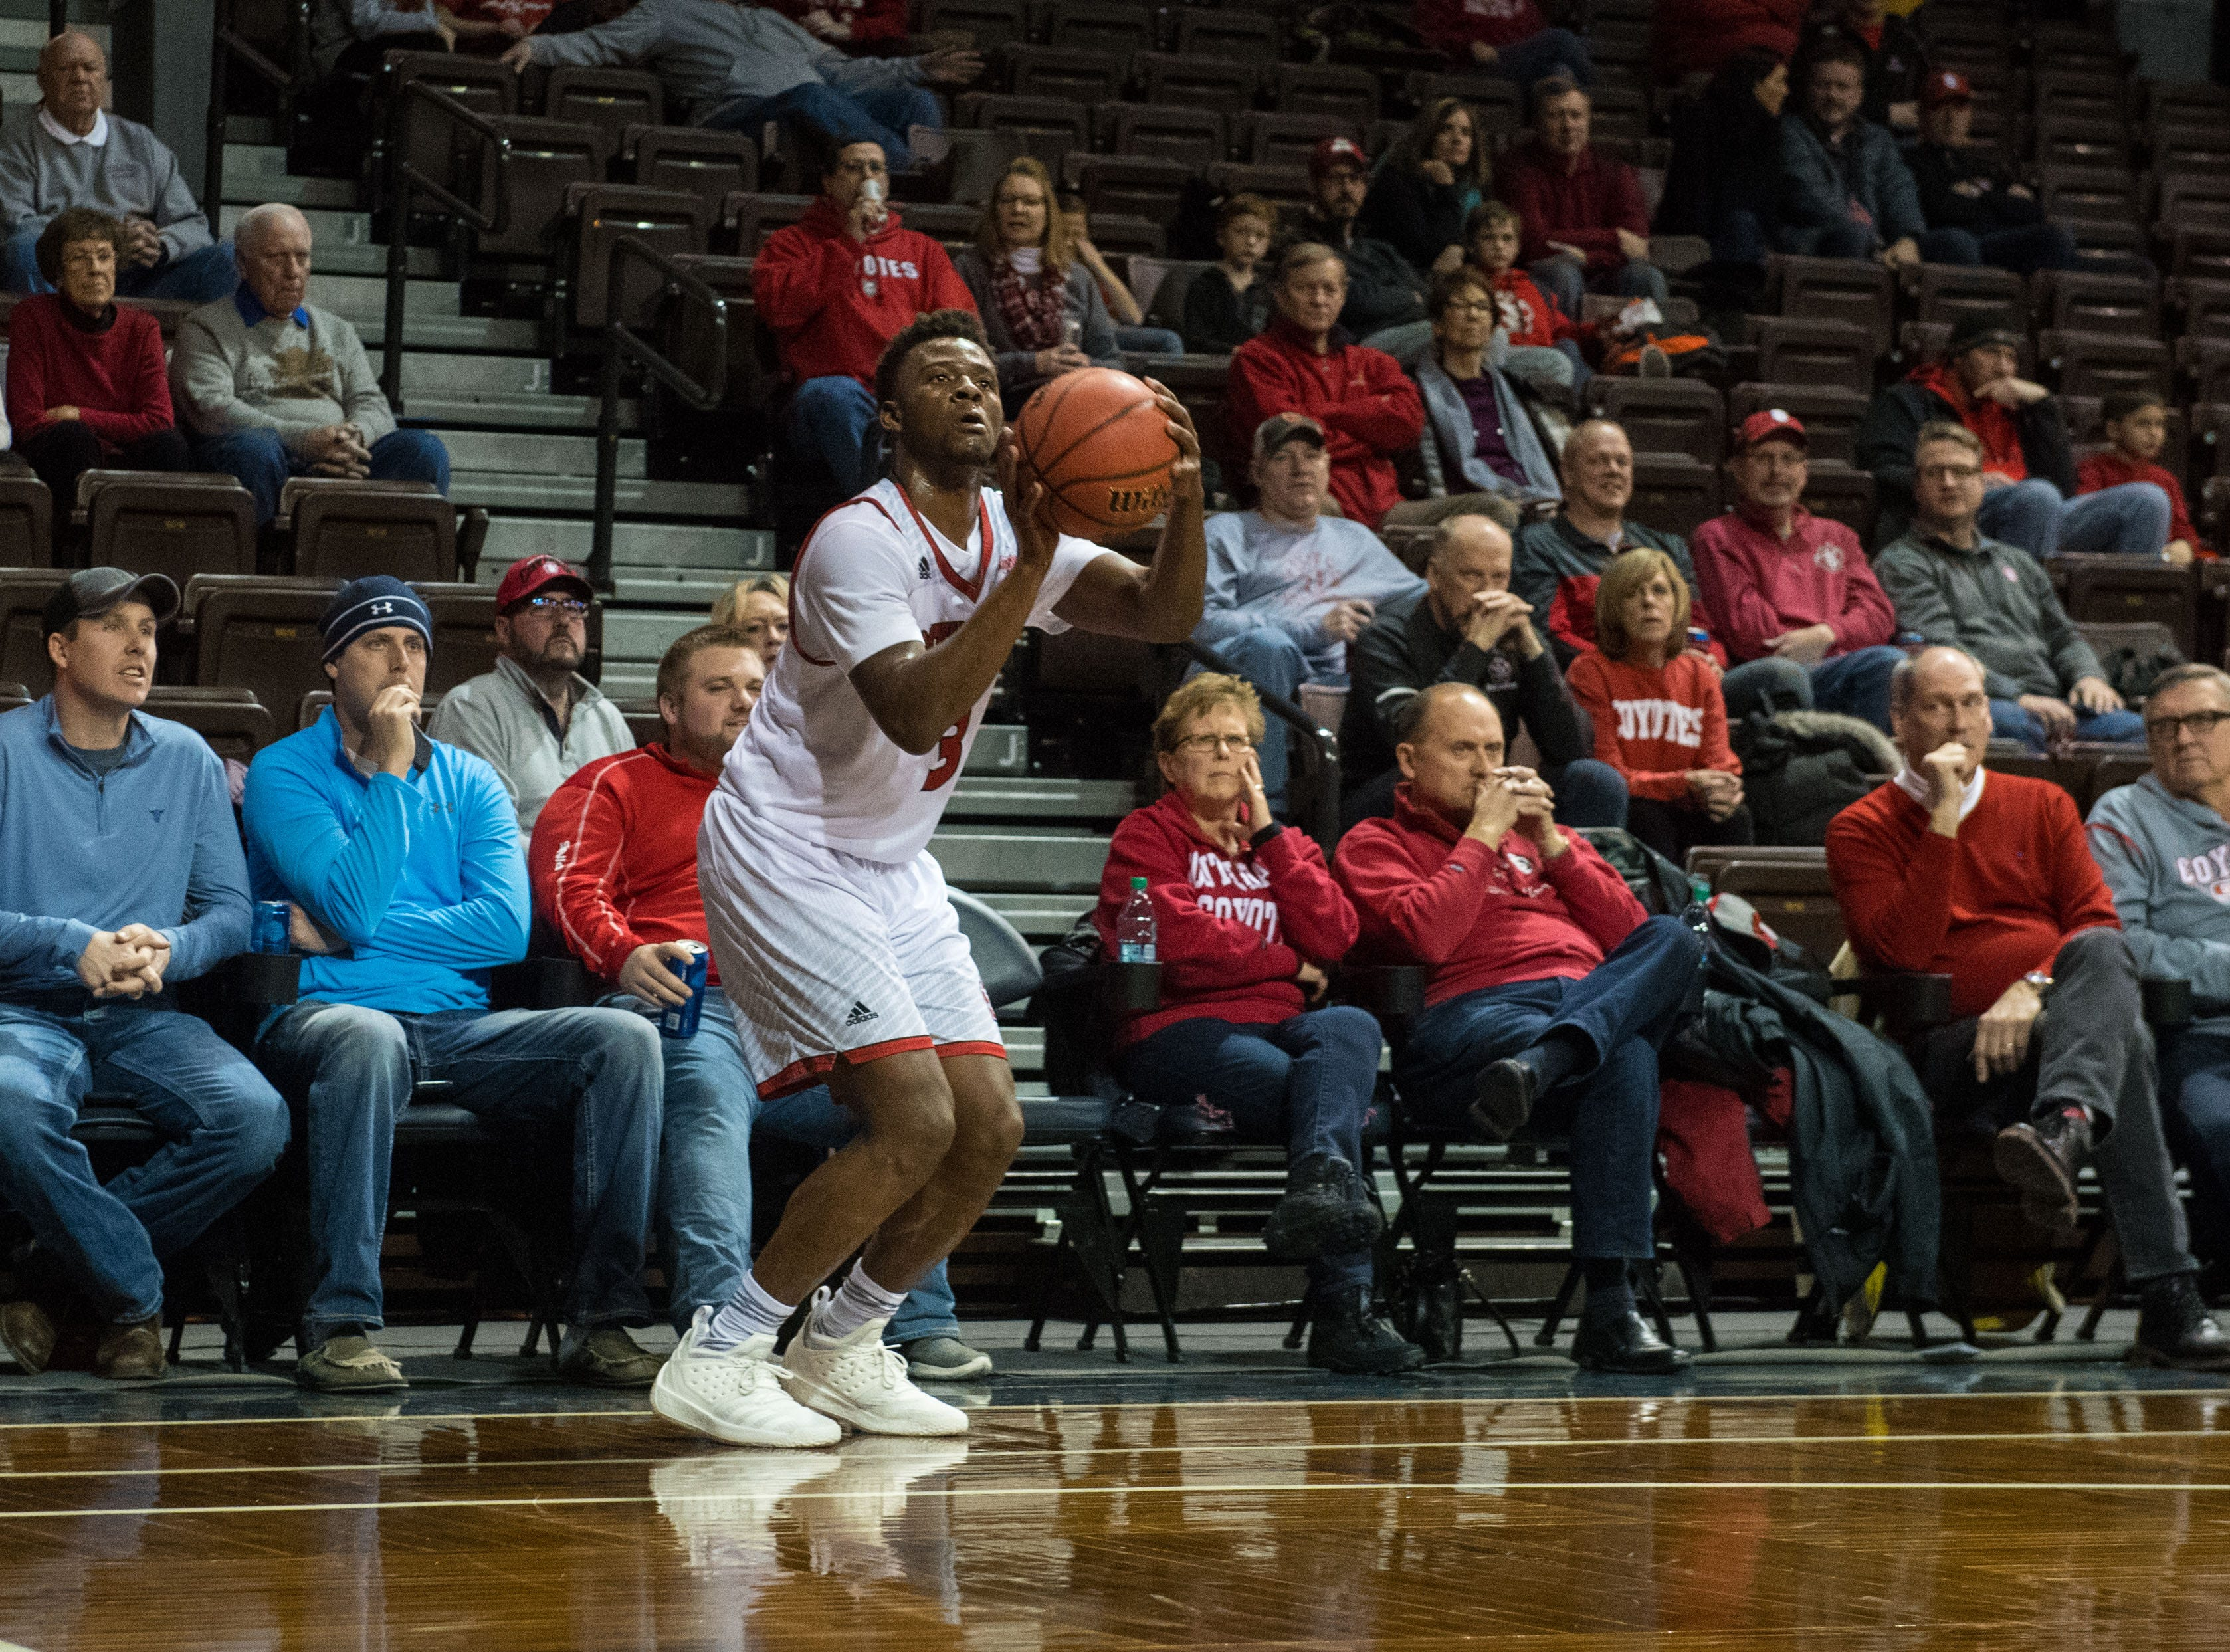 USD's Triston Simpson (3) shoots the ball during a game against Omaha at the Sanford Pentagon in Sioux Falls, S.D., Thursday, Feb. 7, 2019.